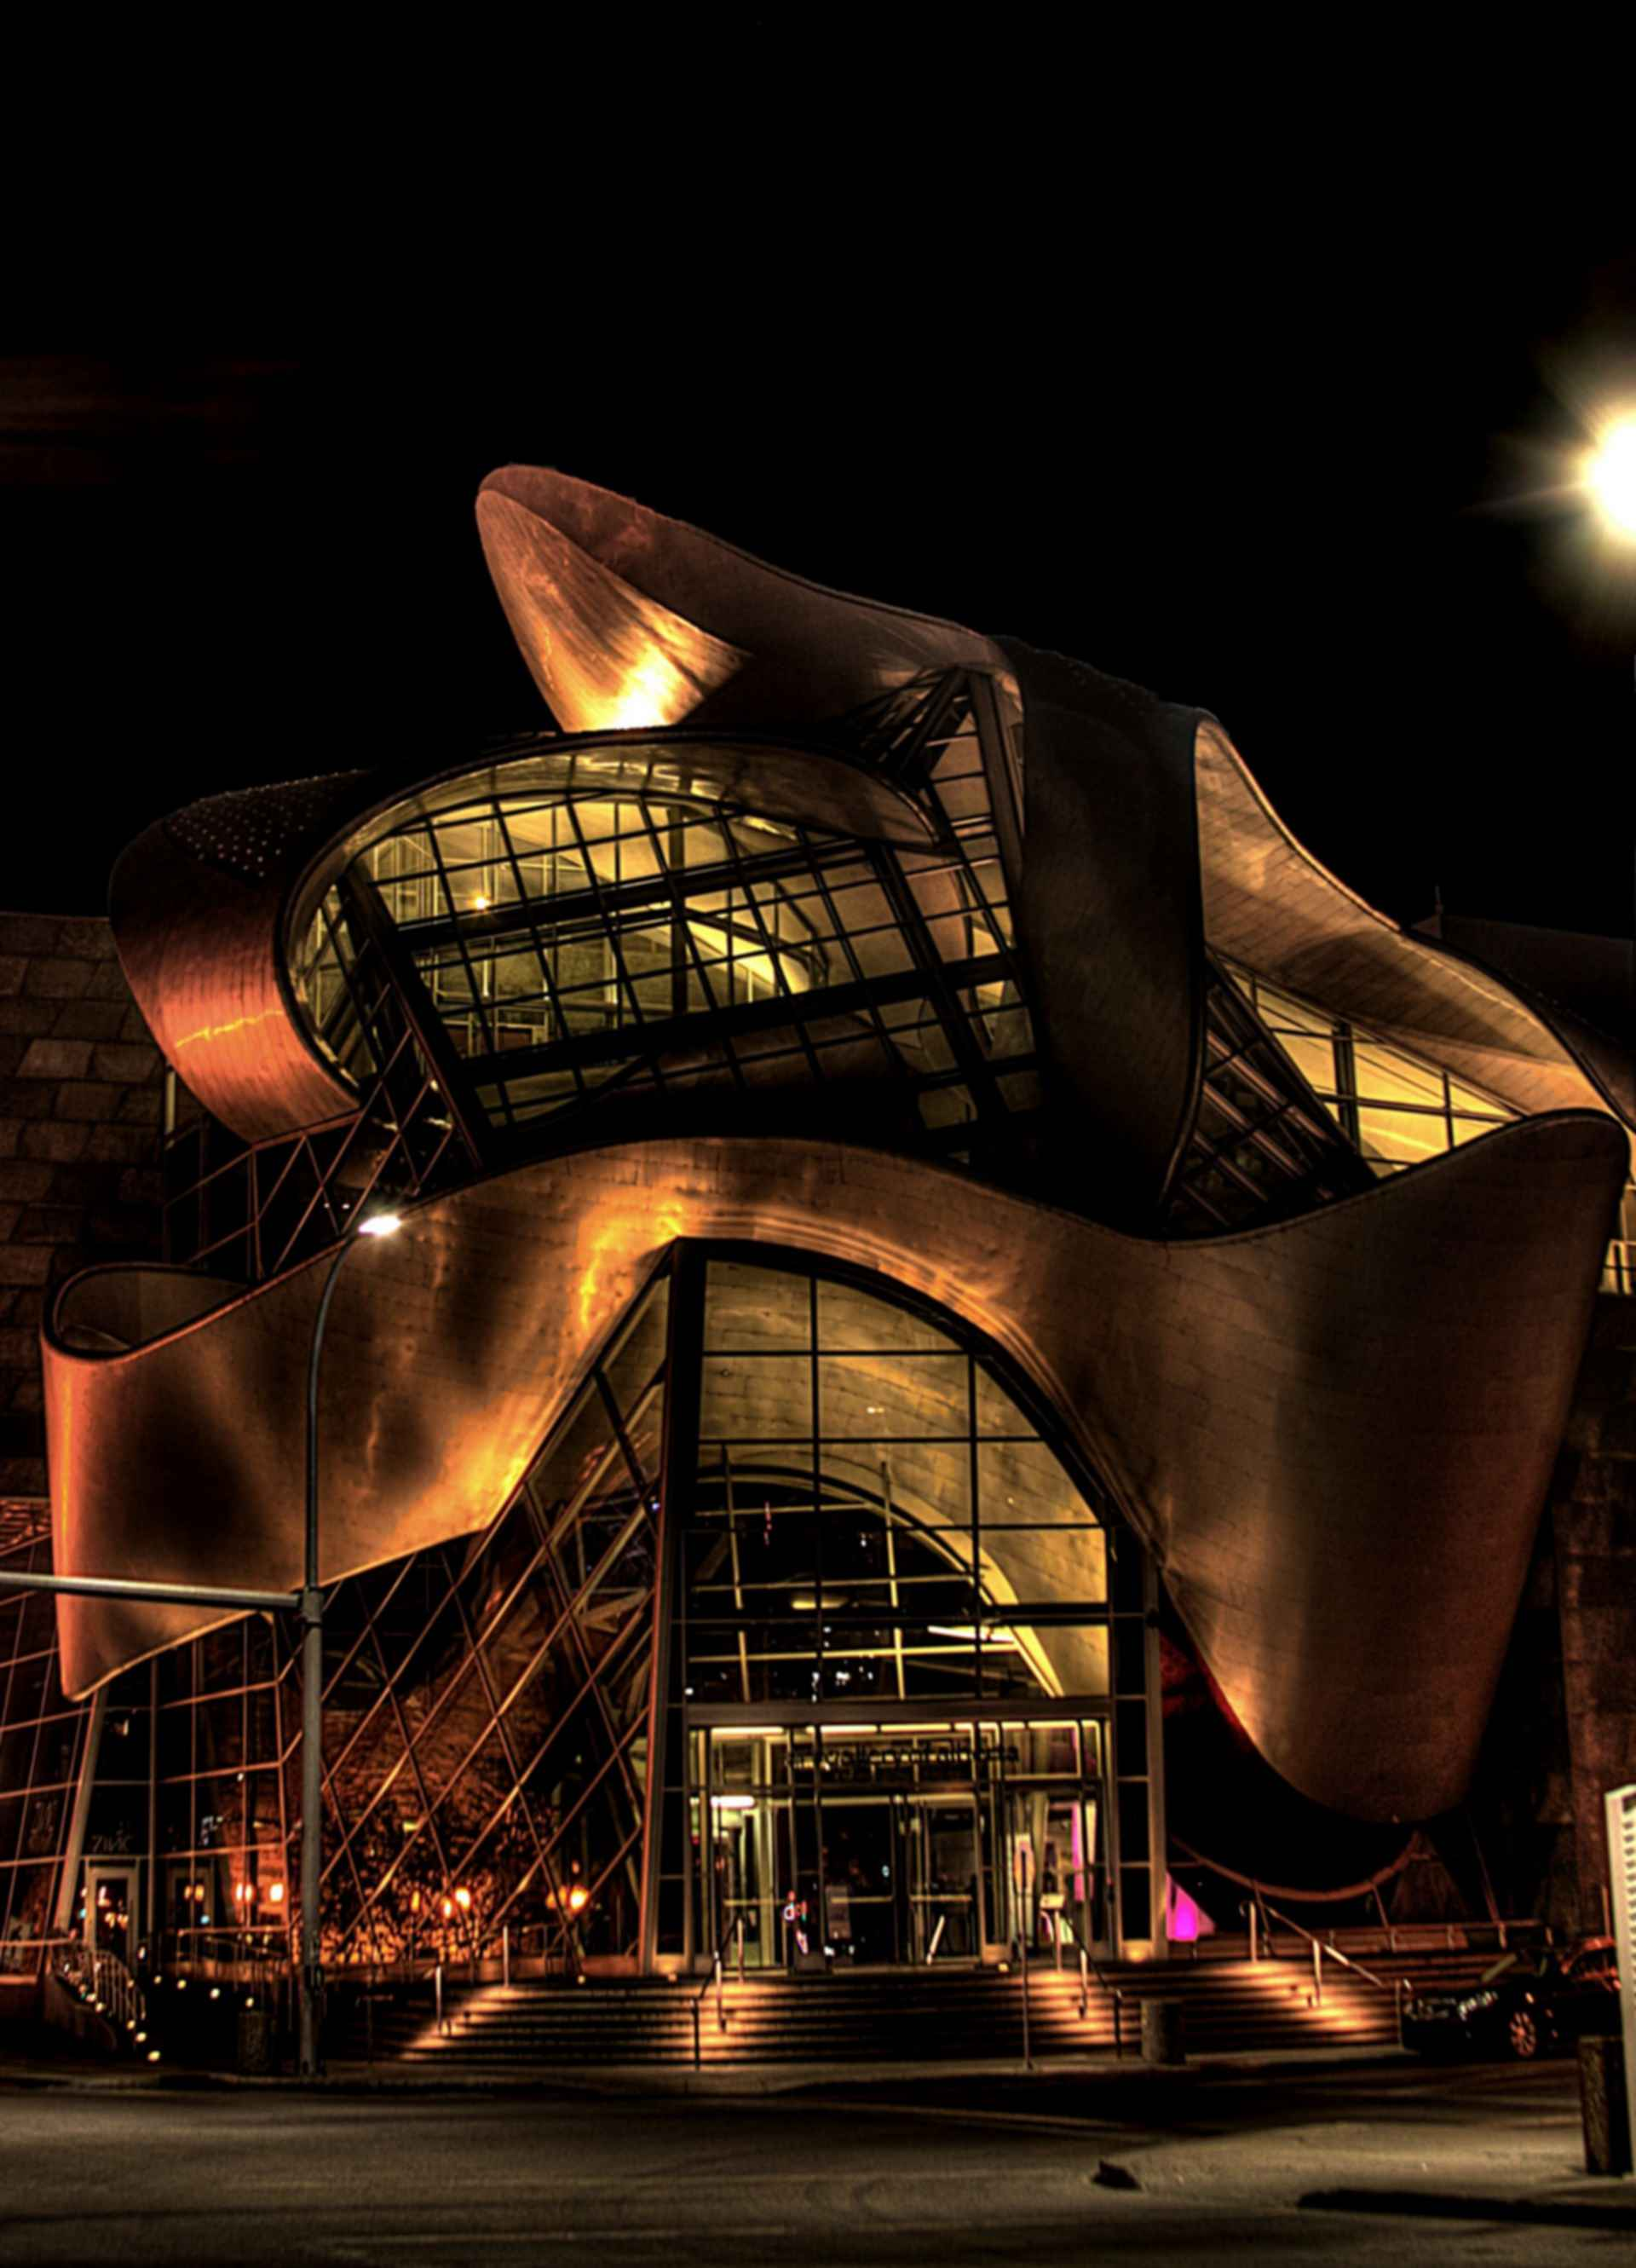 Art Gallery of Alberta - Exterior at Night